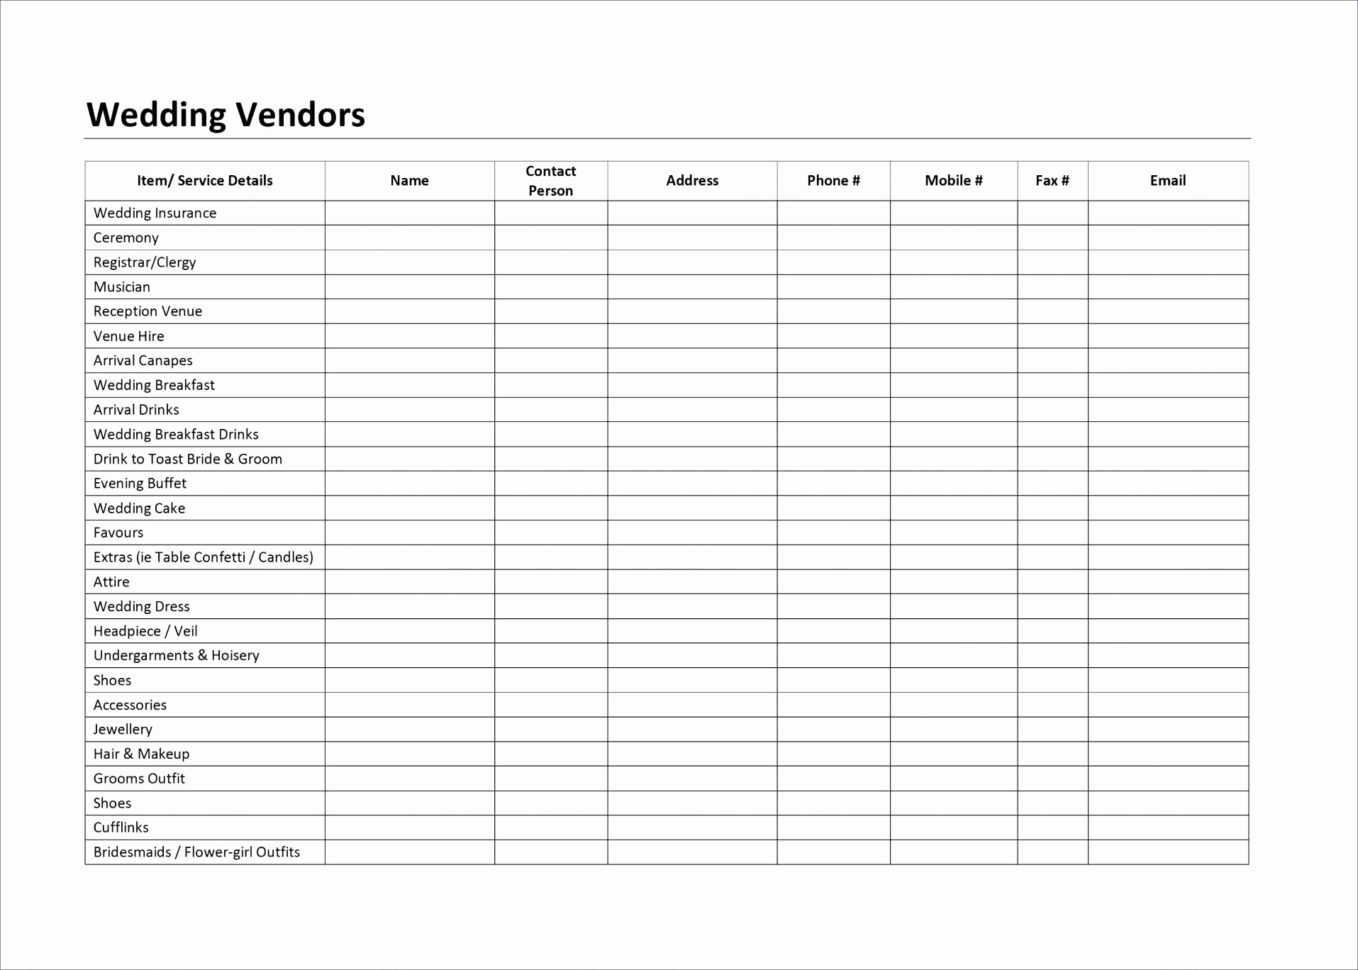 Church Offering Spreadsheet Awesome Free Church Tithe And Fering Within Church Tithe And Offering Spreadsheet